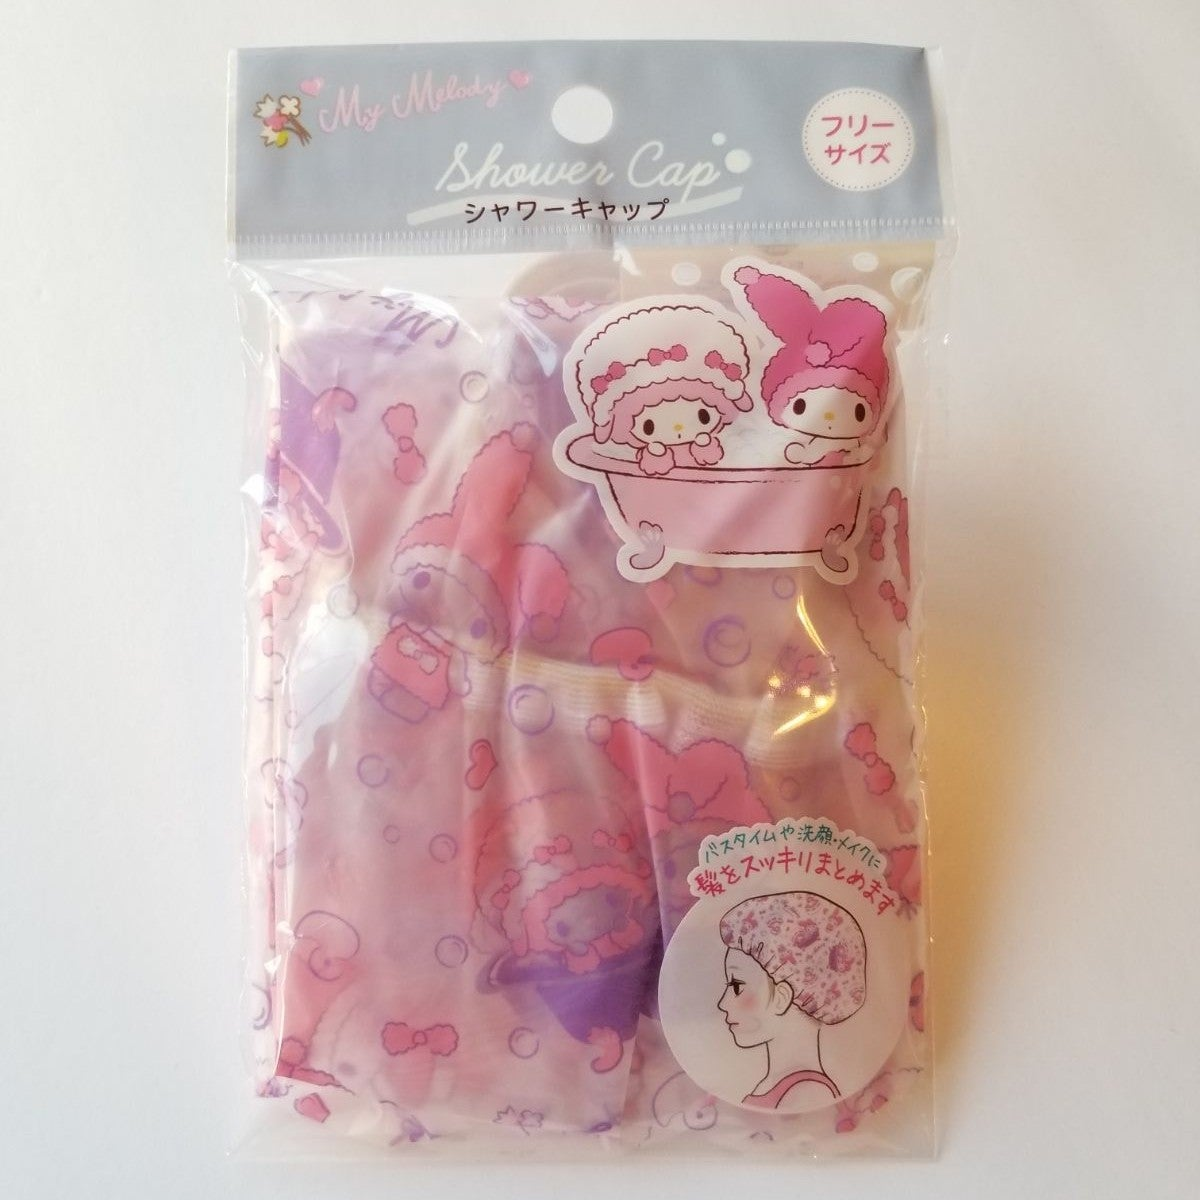 SANRIO MY MELODY SHOWER CAP